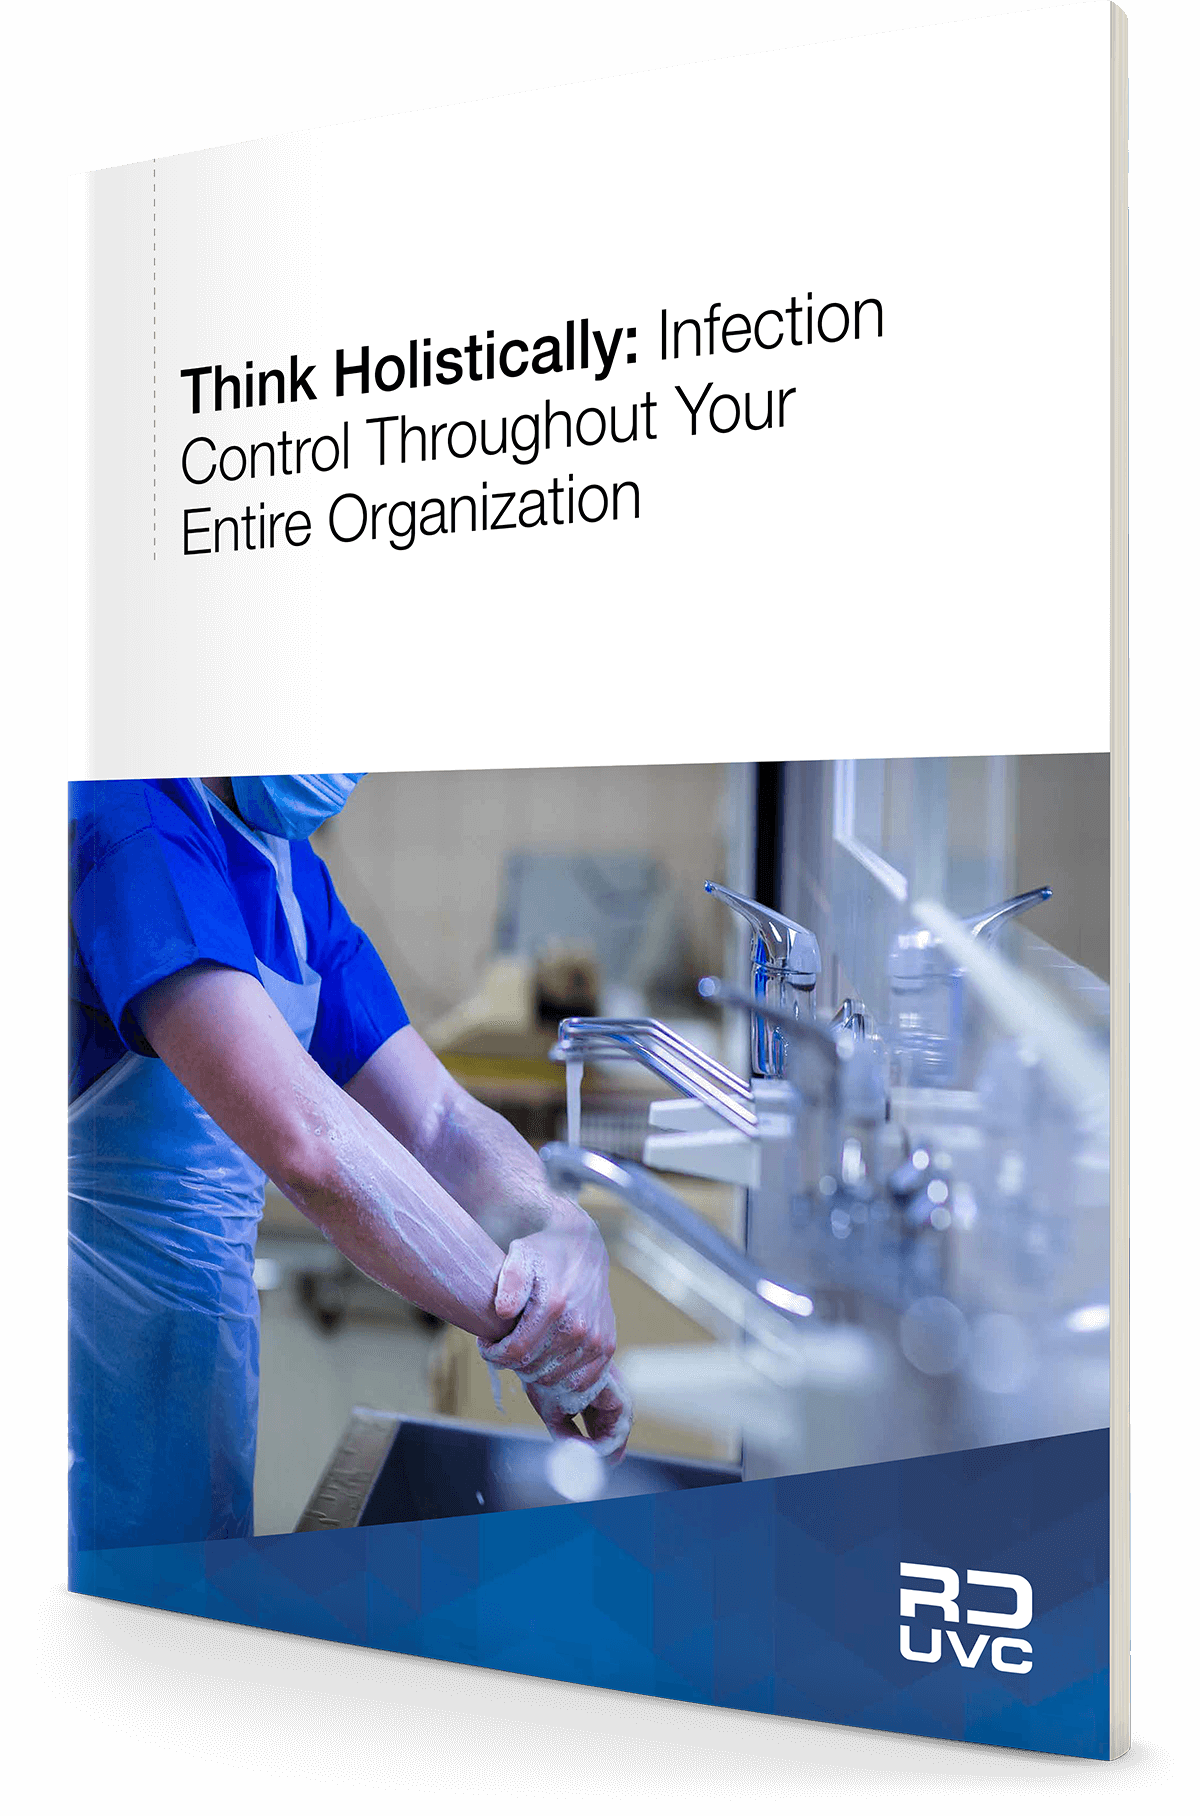 Infection Control Throughout Your Entire Organization